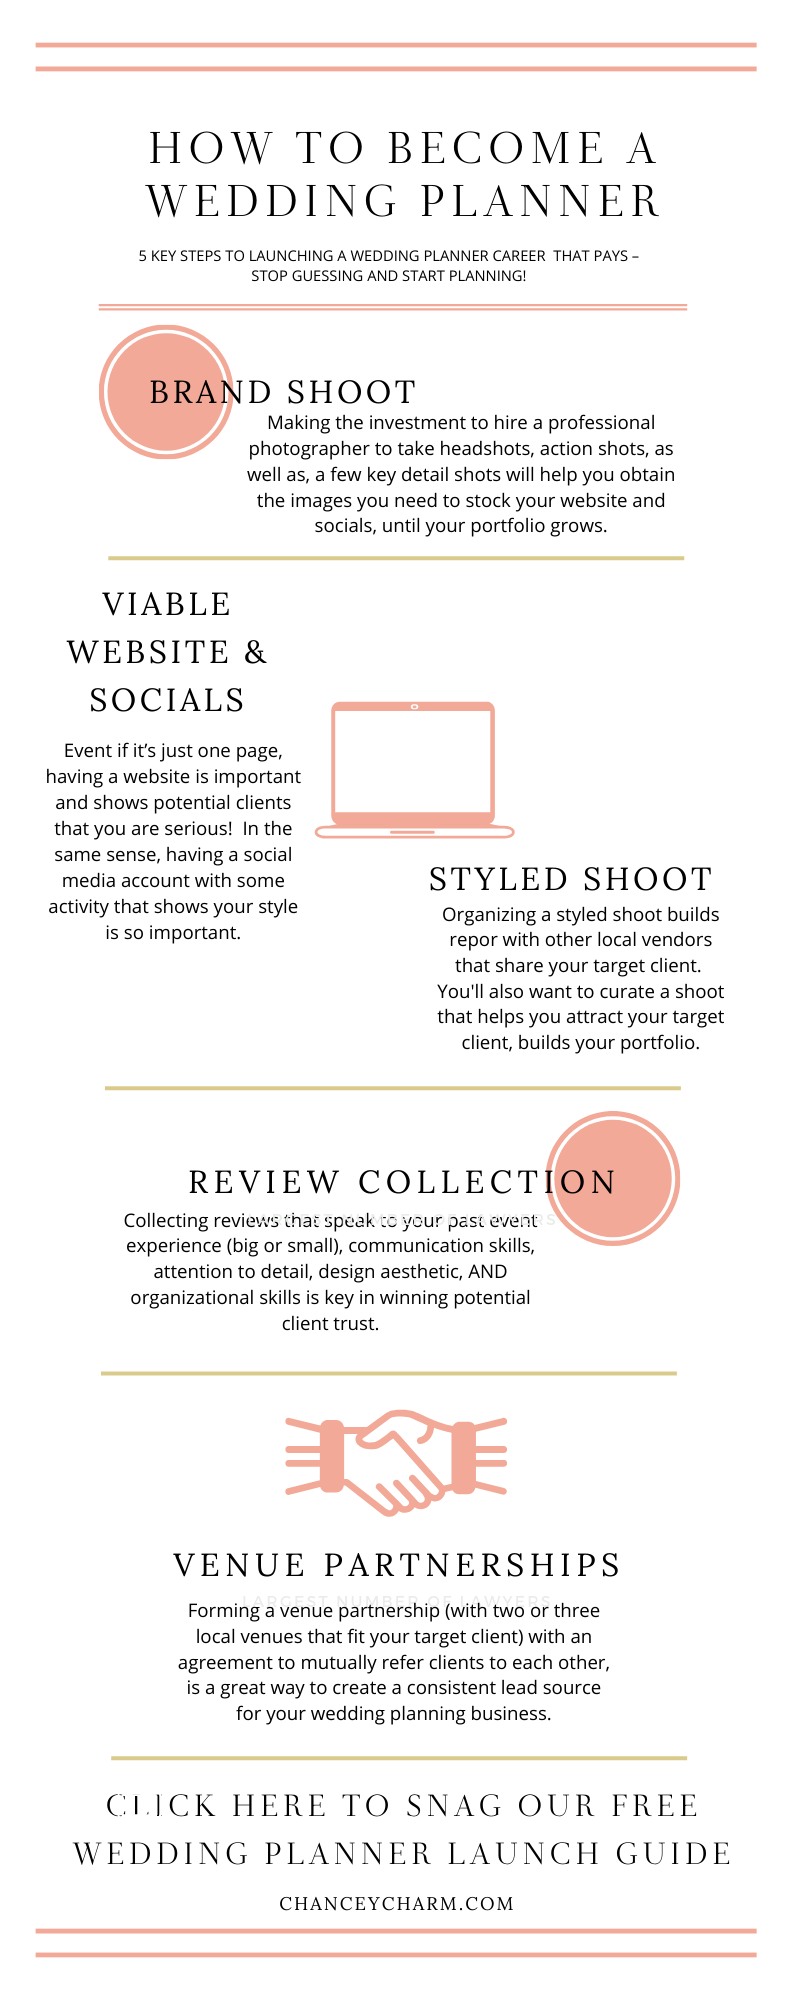 You Want To Learn How To Become A Wedding Planner In 2020 Free Wedding Planner Wedding Planner Business Wedding Planner Resources